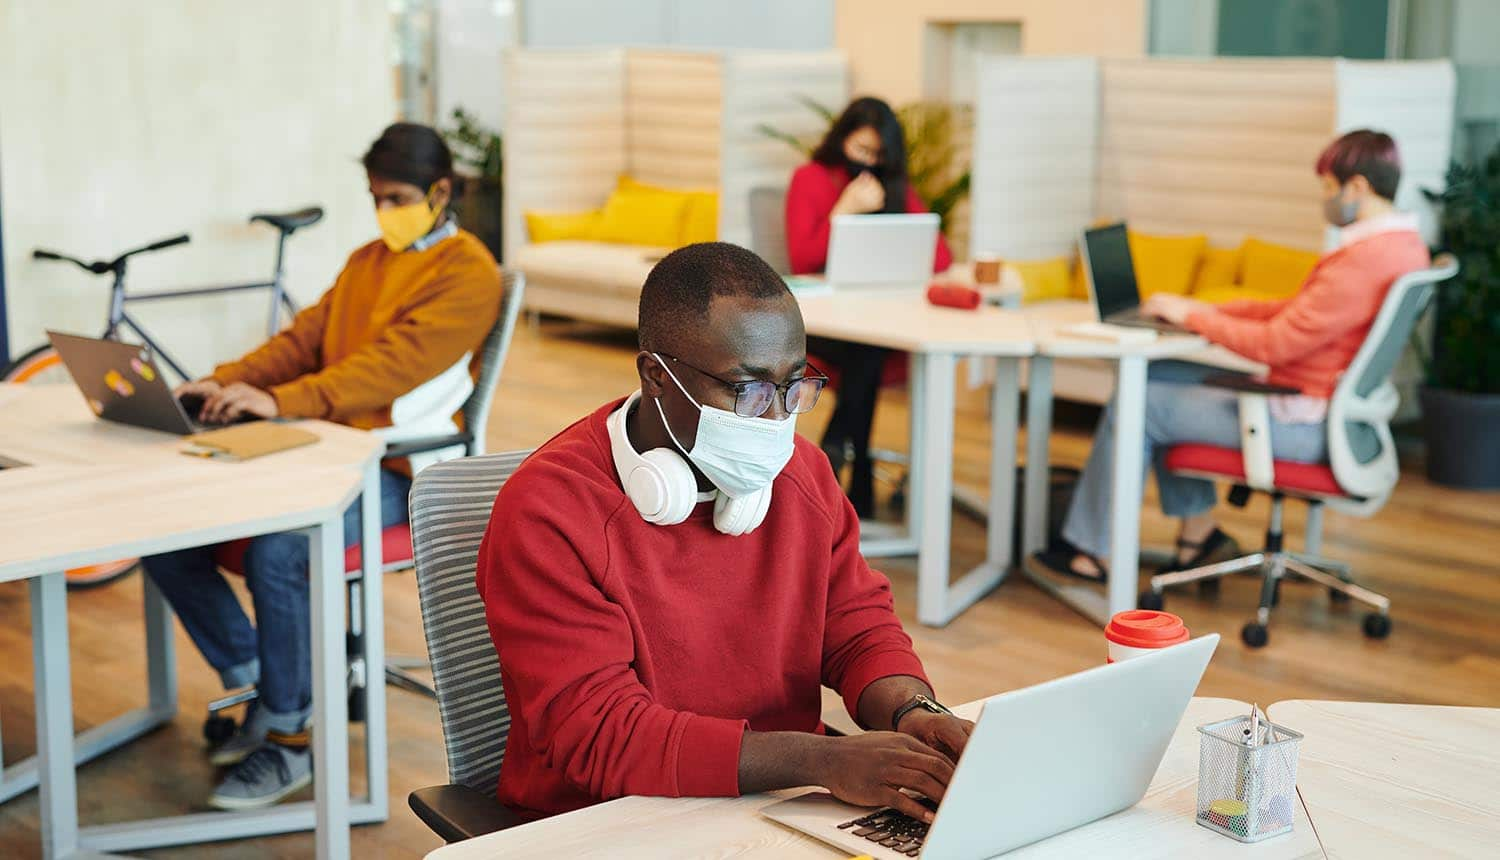 Male office manager in casualwear and protective mask using laptop showing workplace safety during pandemic